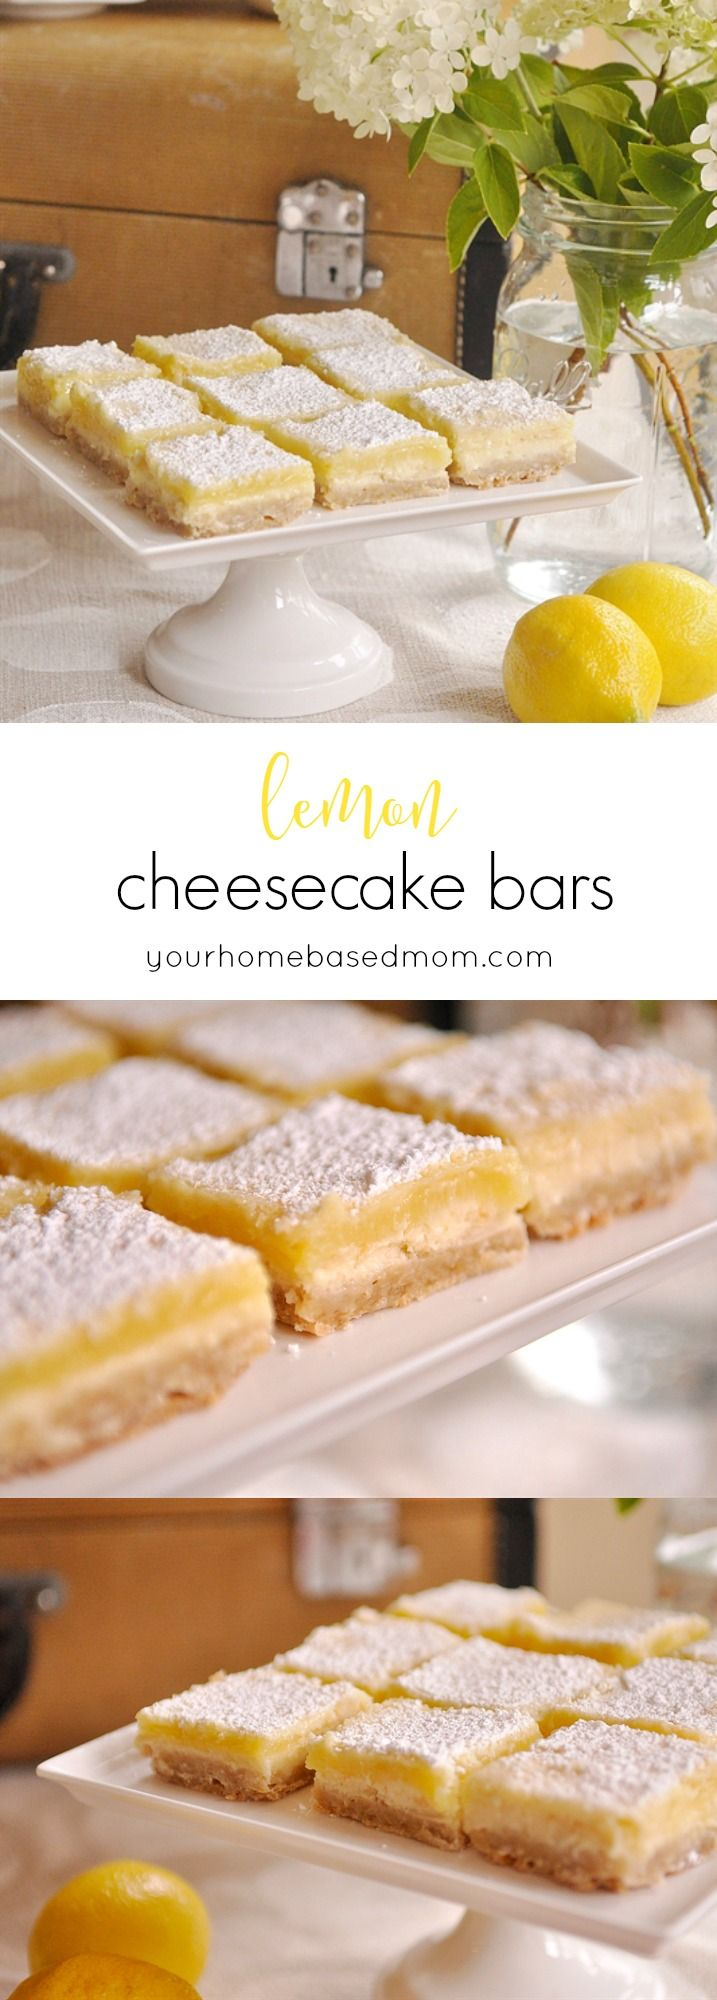 Lemon Cheesecake Bars - guaranteed to become your favorite lemon bar ever! A layer of cheesecake, then regular lemon bars on top!